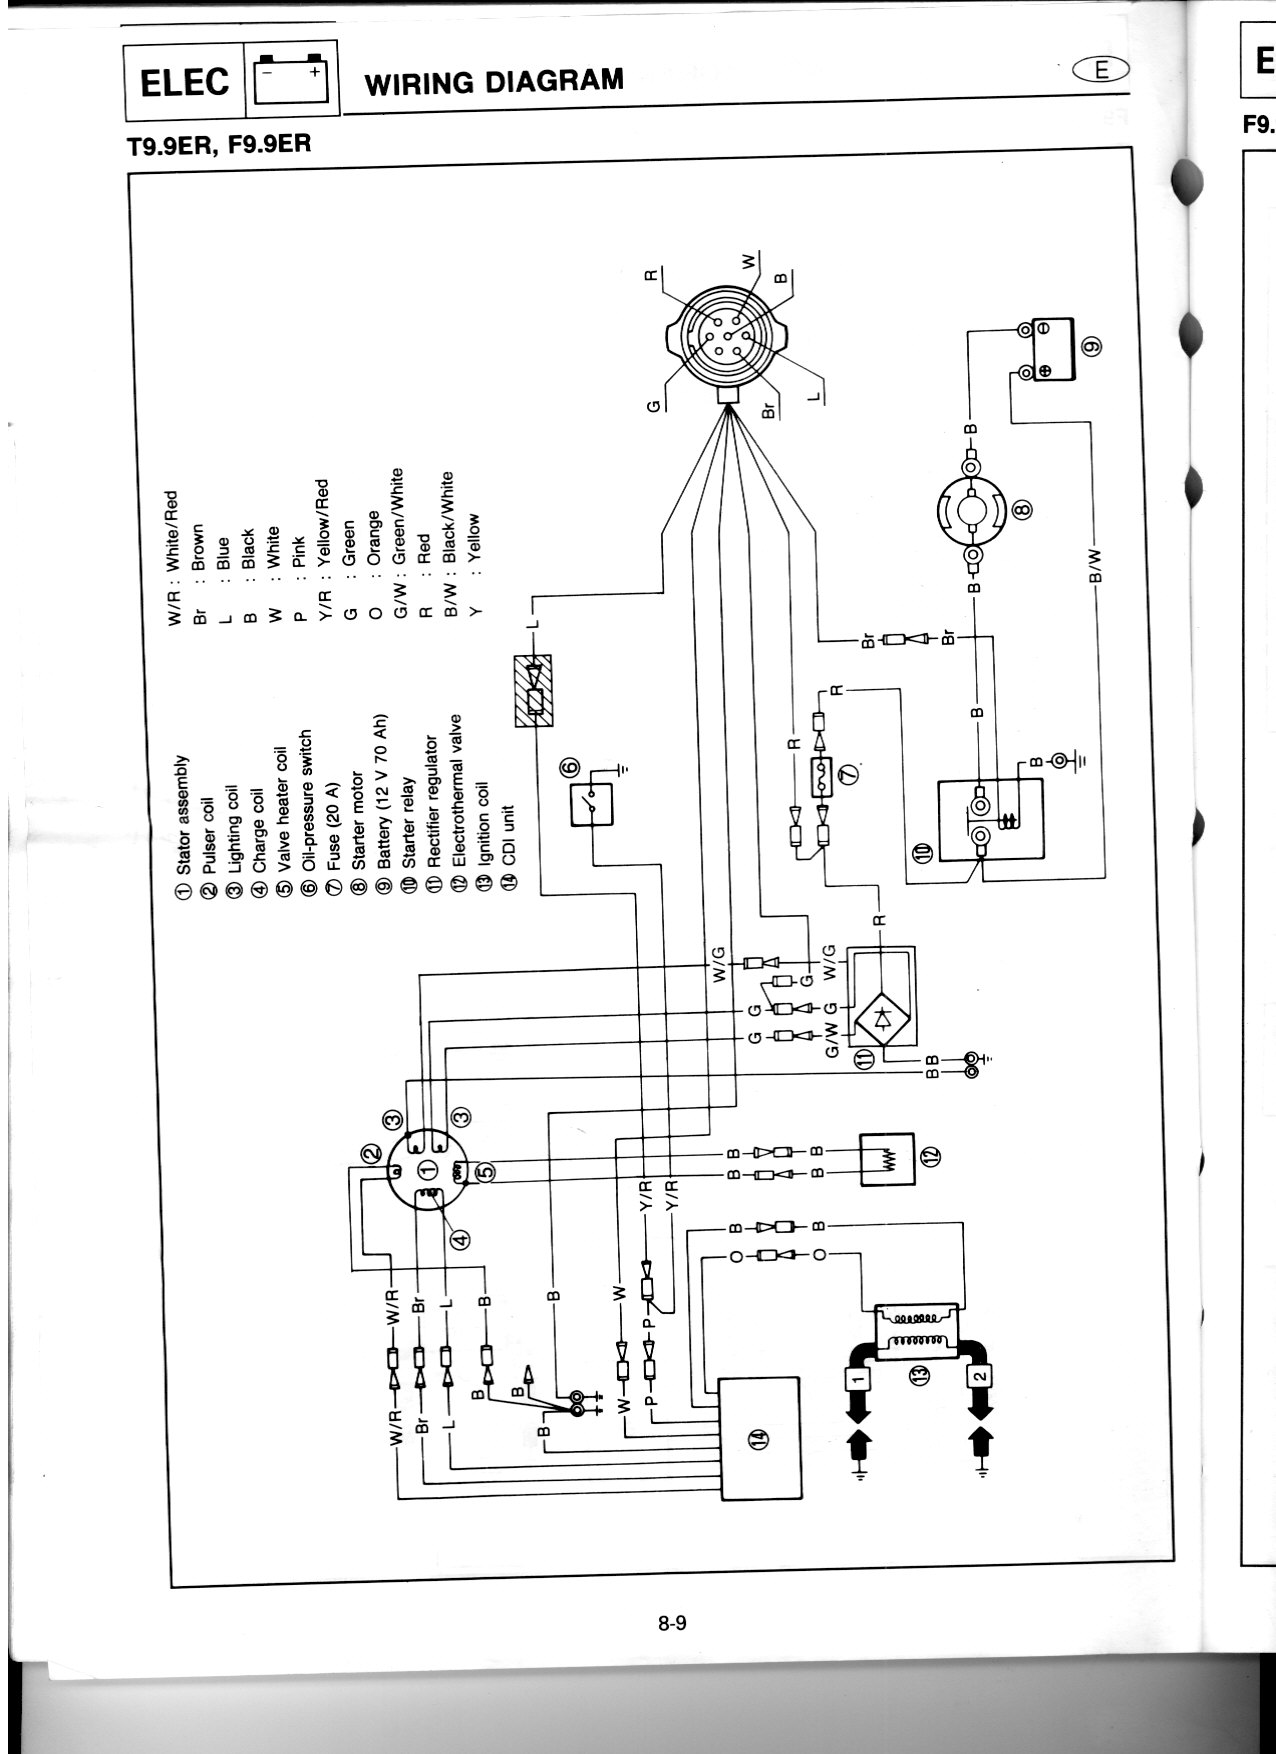 Yamaha F250 Wiring Diagram Diagrams Reader For 2001 All Radio